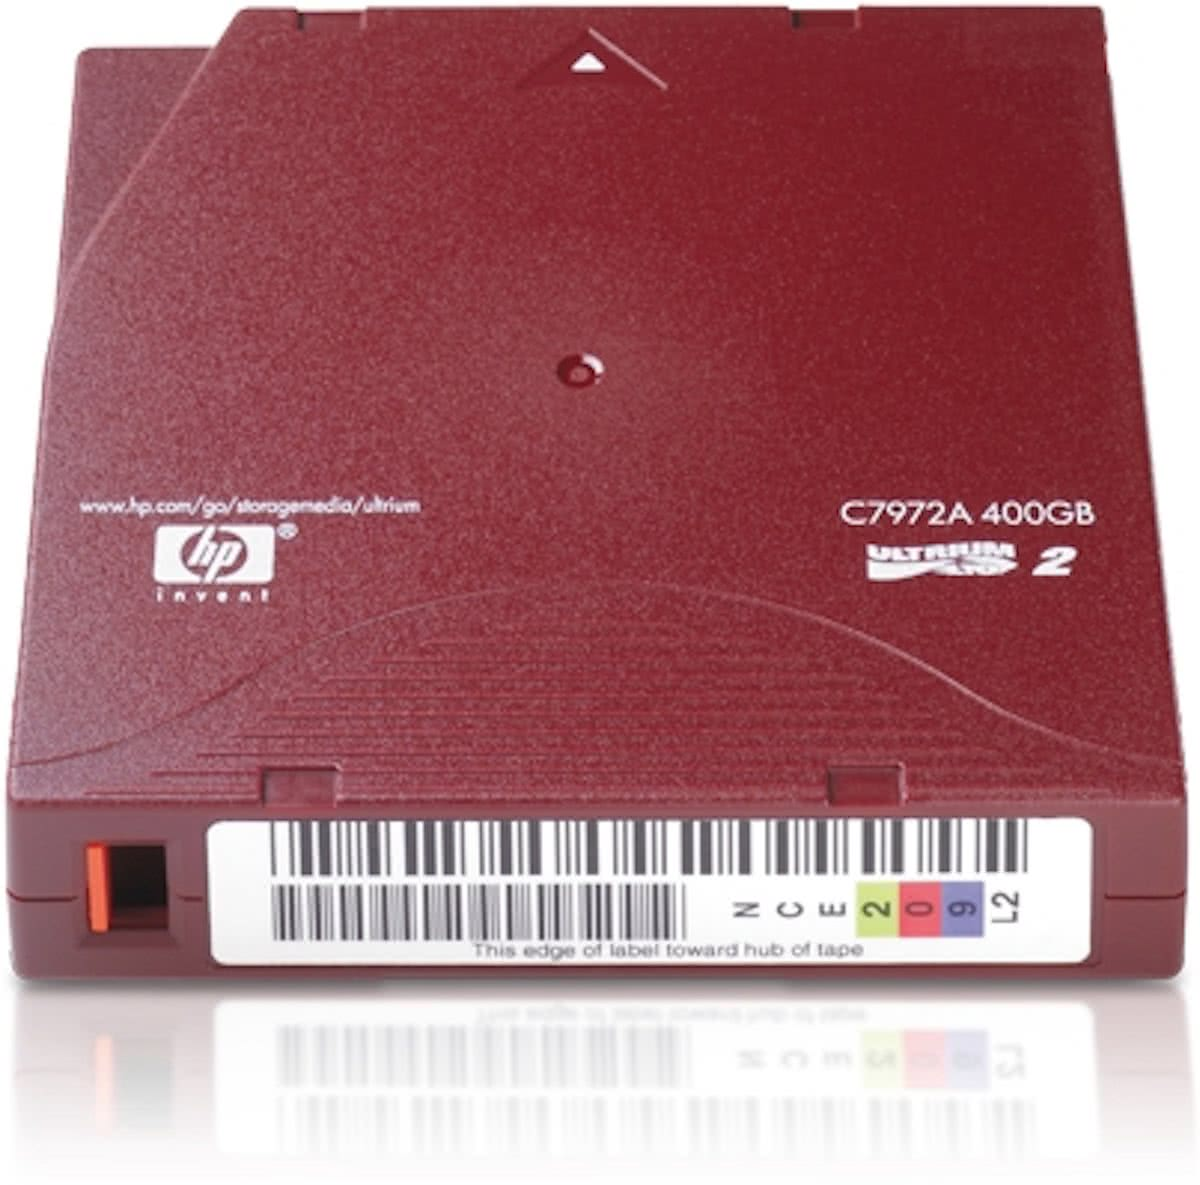 Data Cartridge Ultrium 2 400GB